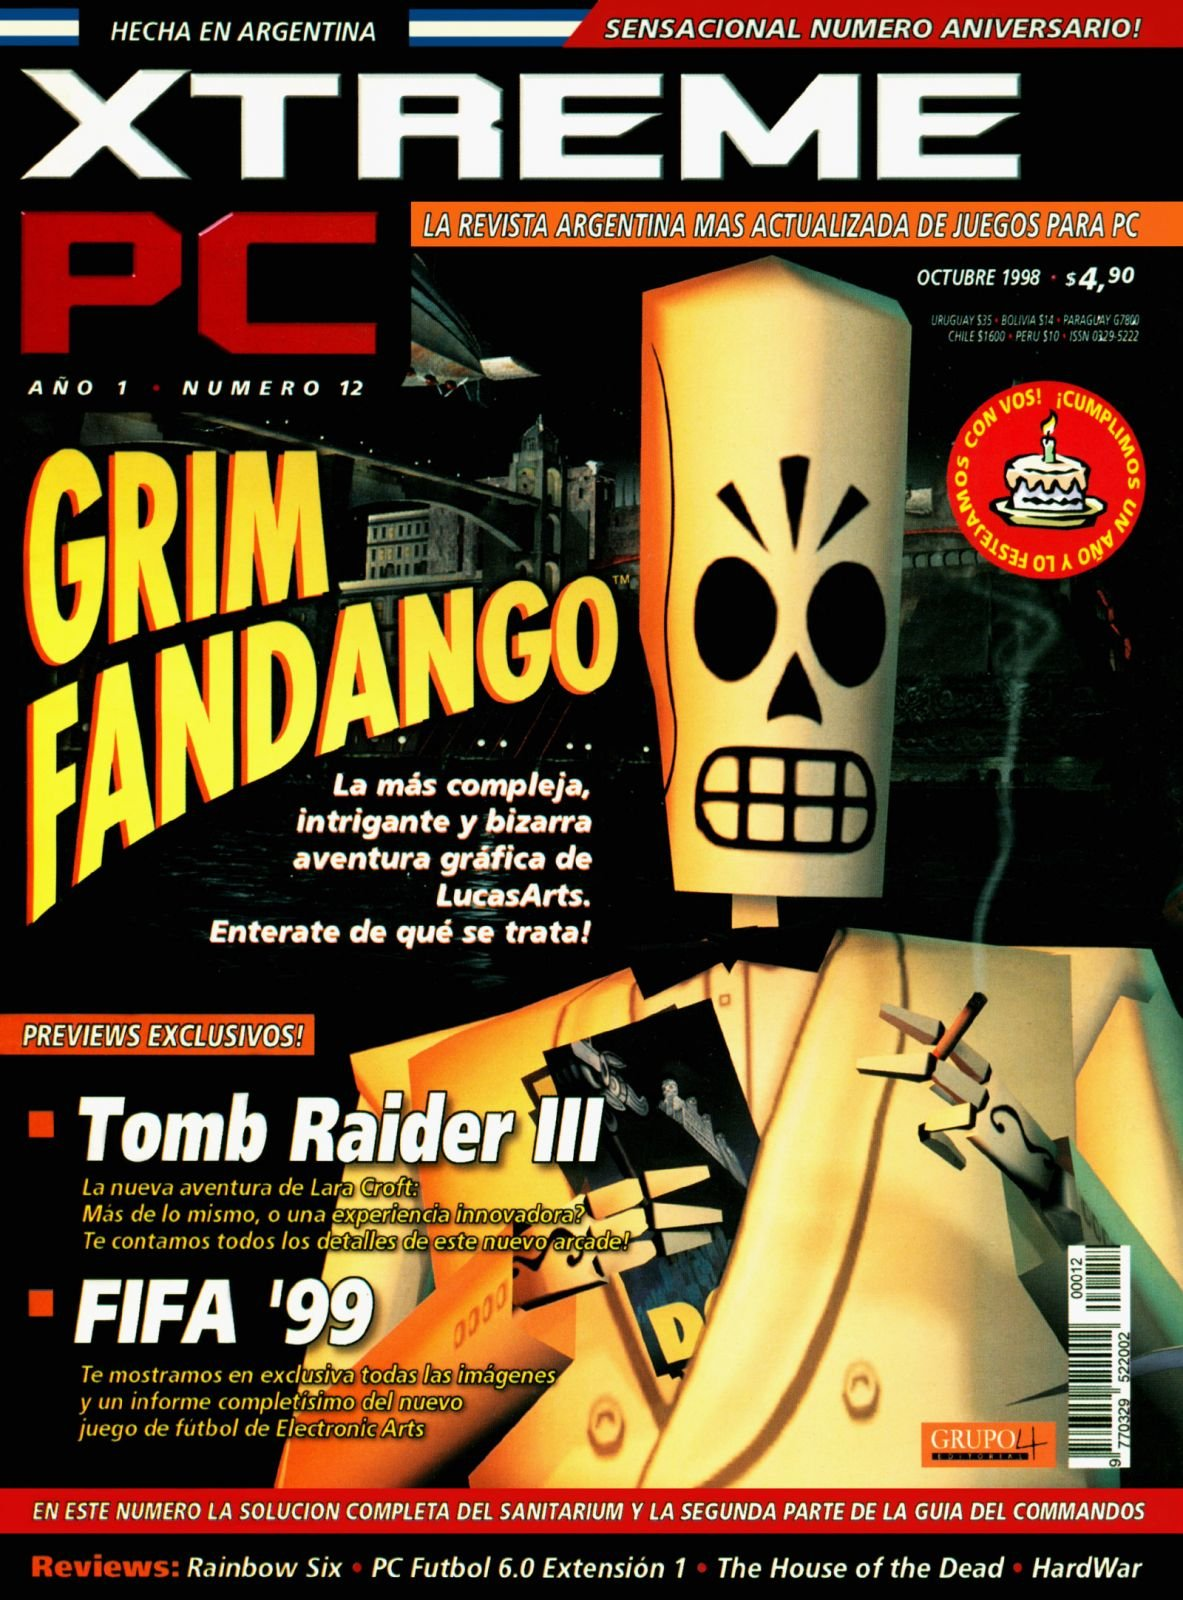 Xtreme PC 12 October 1998